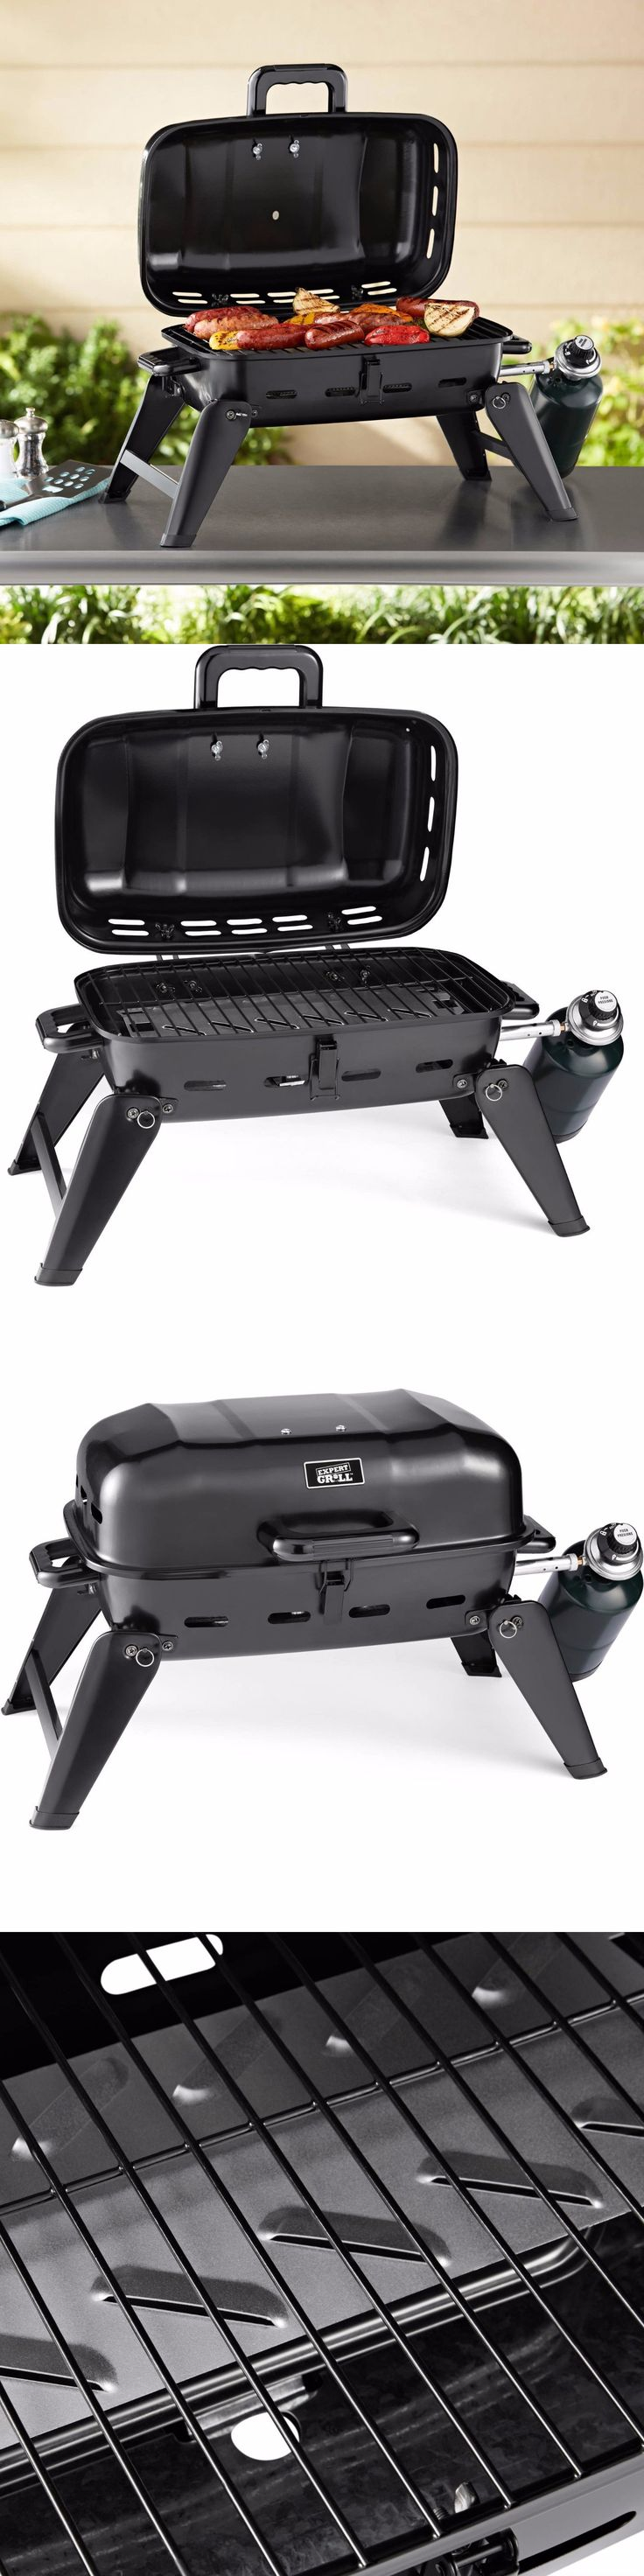 Camping BBQs and Grills 181388: Portable Bbq Grill Gas Camping Barbecue Tabletop Outdoor Propane Cooking Burner -> BUY IT NOW ONLY: $31.65 on eBay!